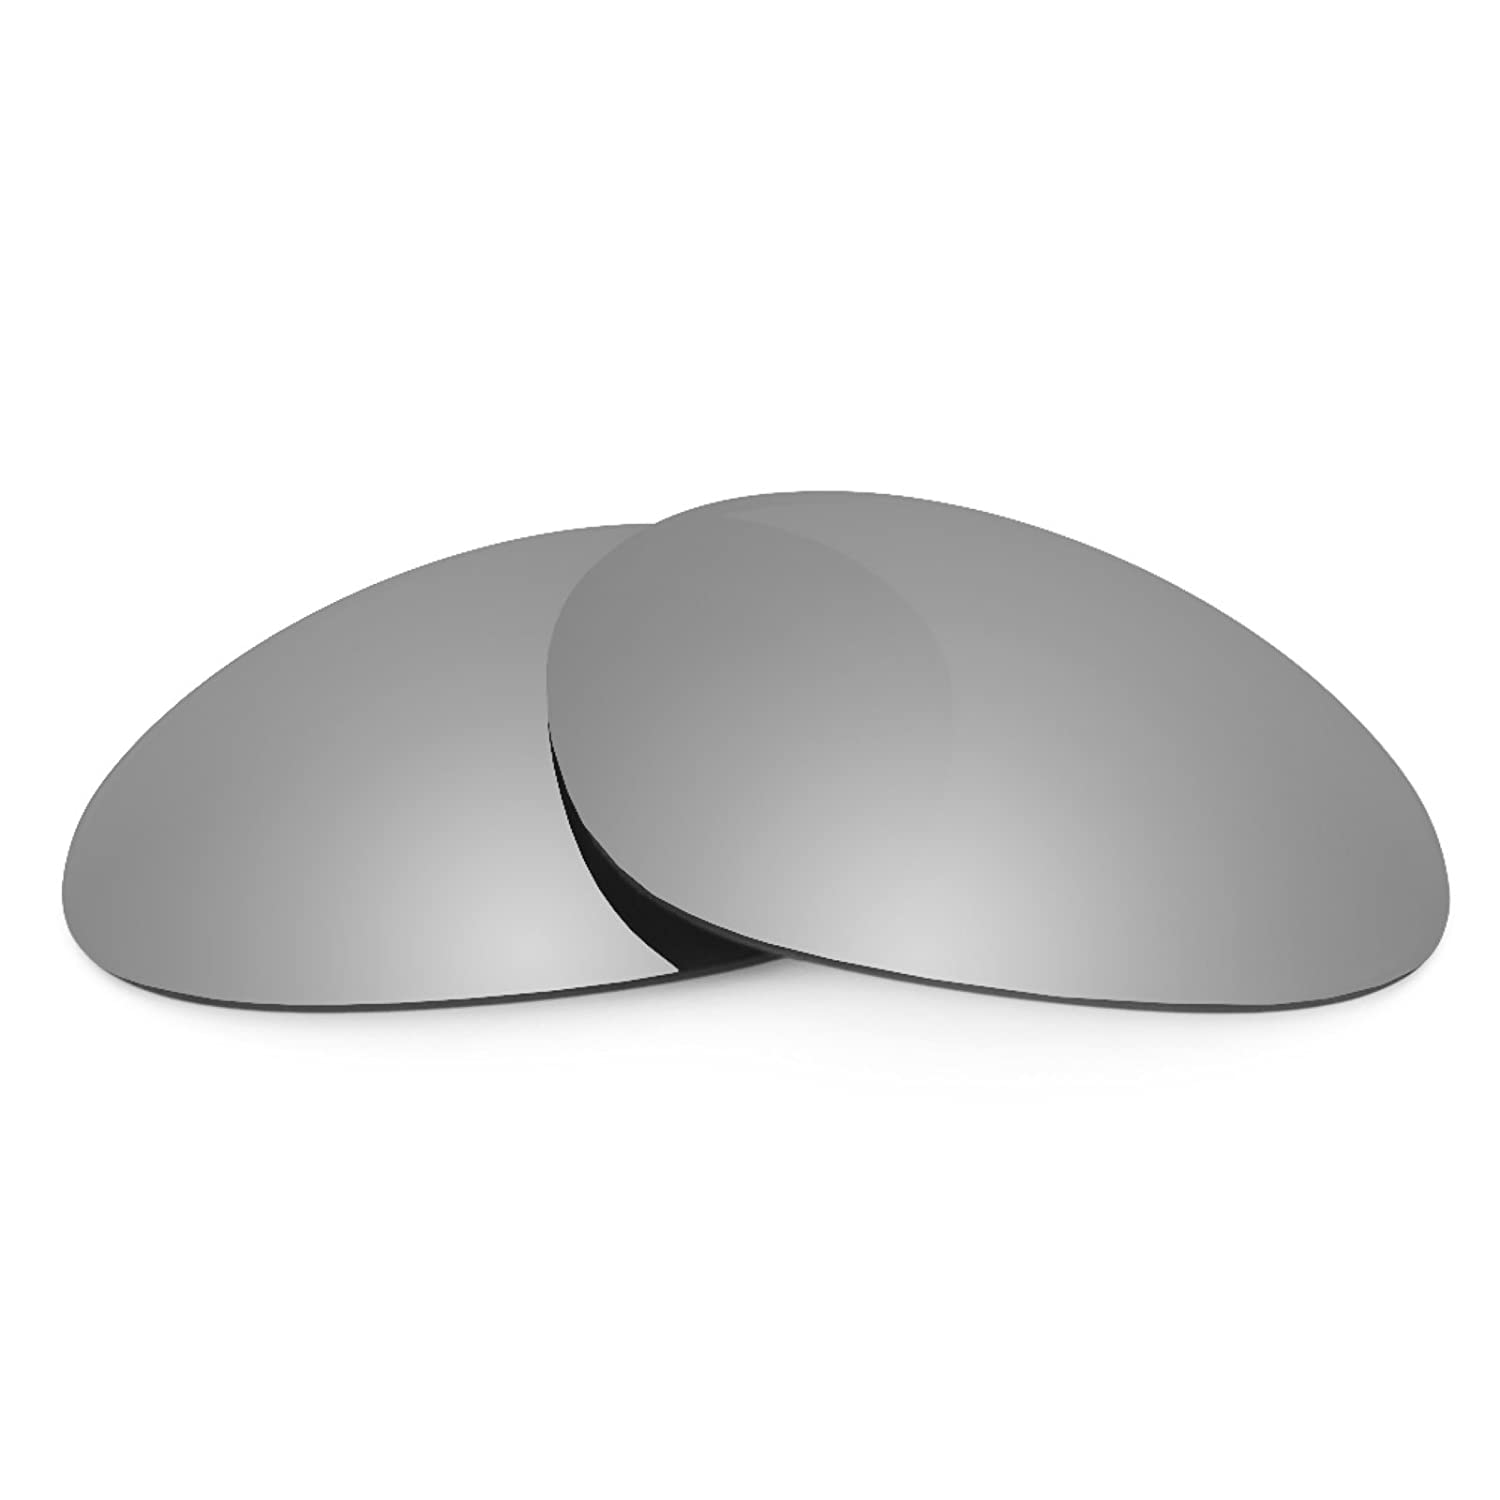 64286a22c1 Revant Replacement Lenses for Oakley Crosshair 2.0  1540902838-88719 ...